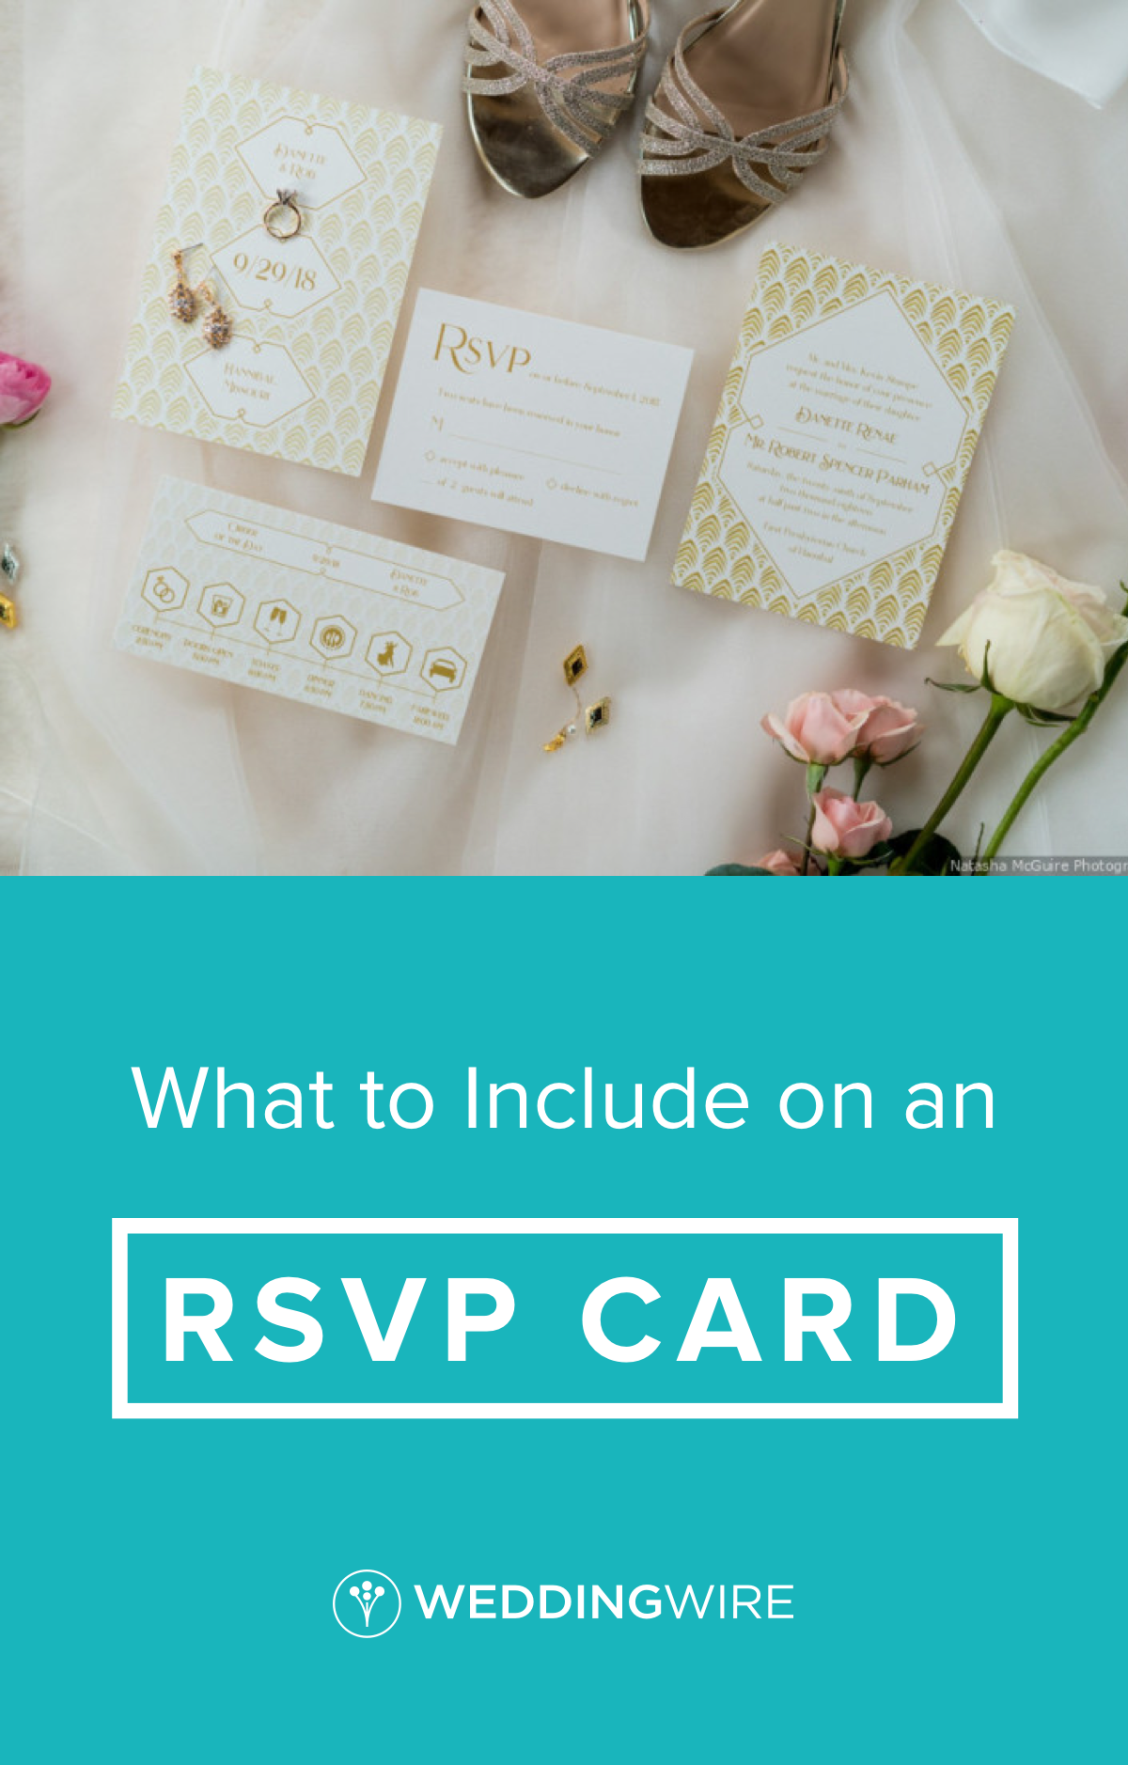 What to Include on an RSVP Card From the deadline to